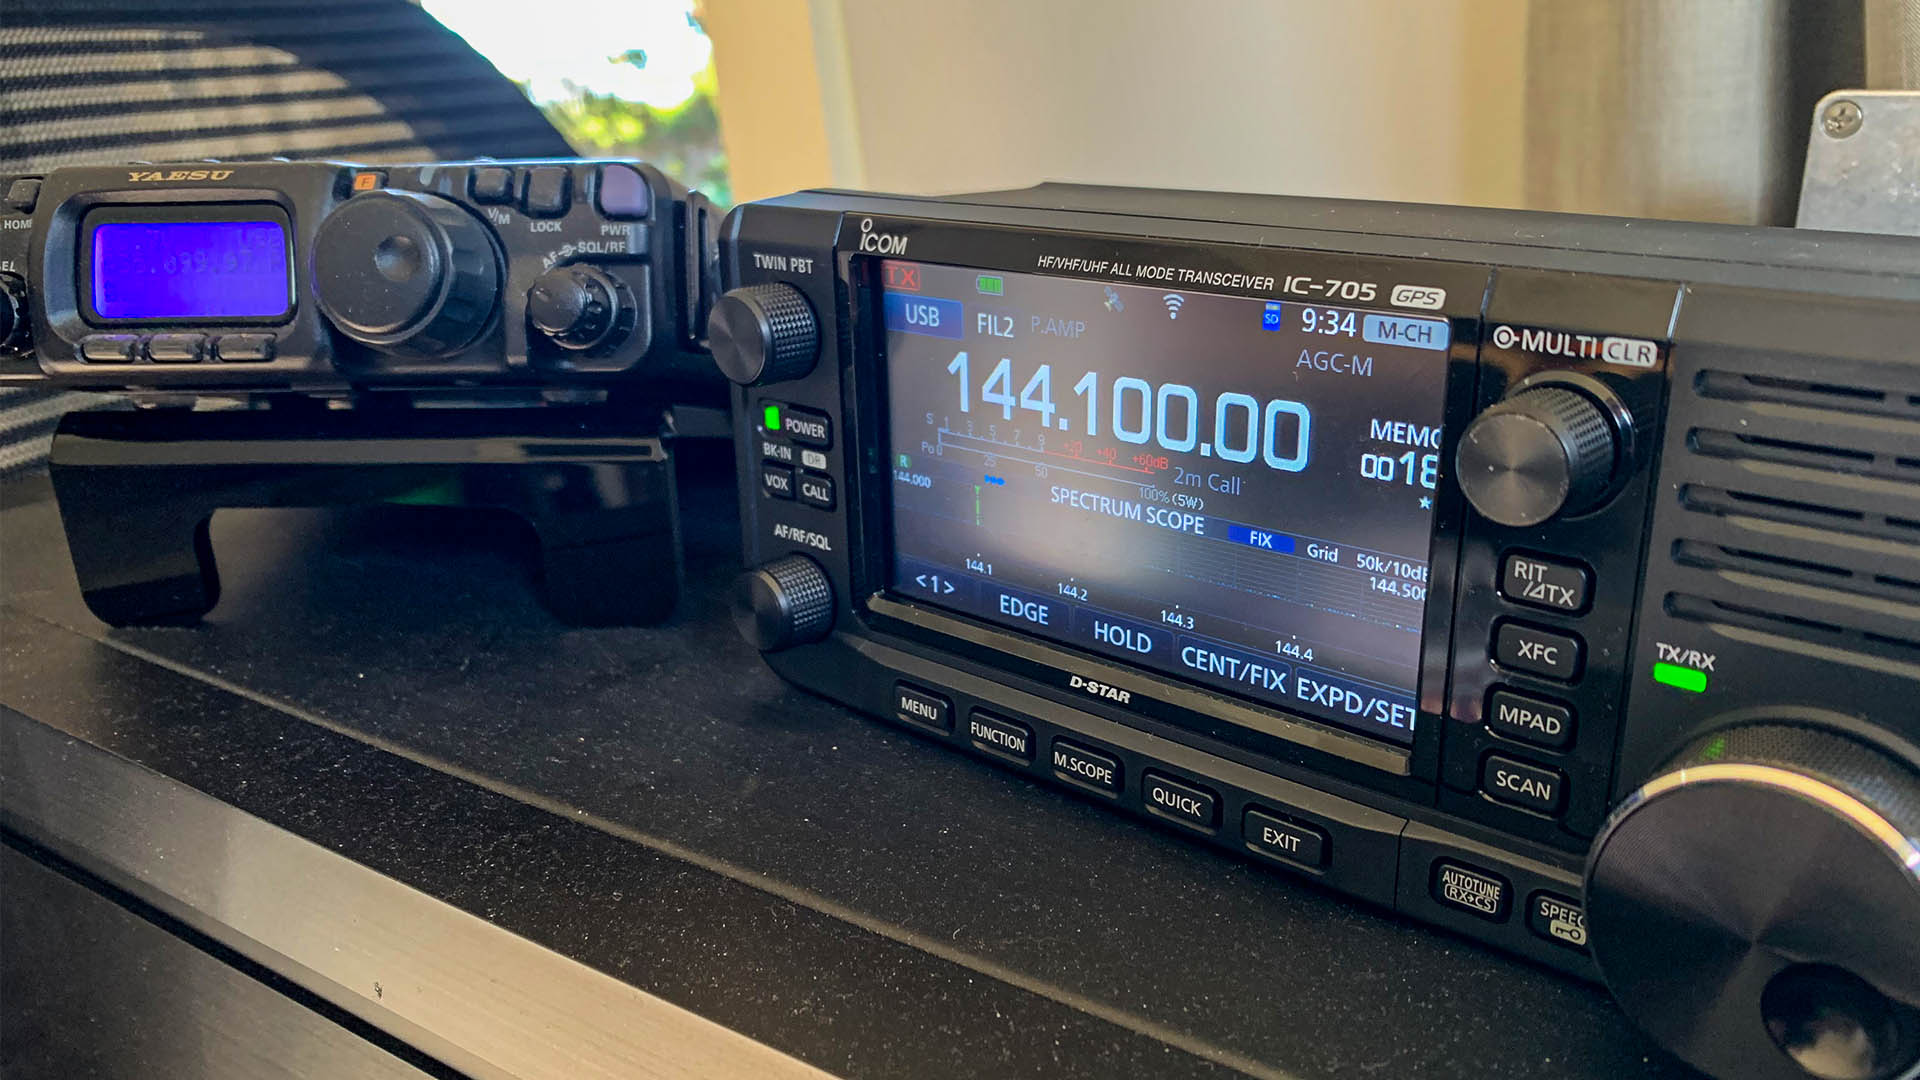 Icom IC-705 All Mode Transceiver and FT-818